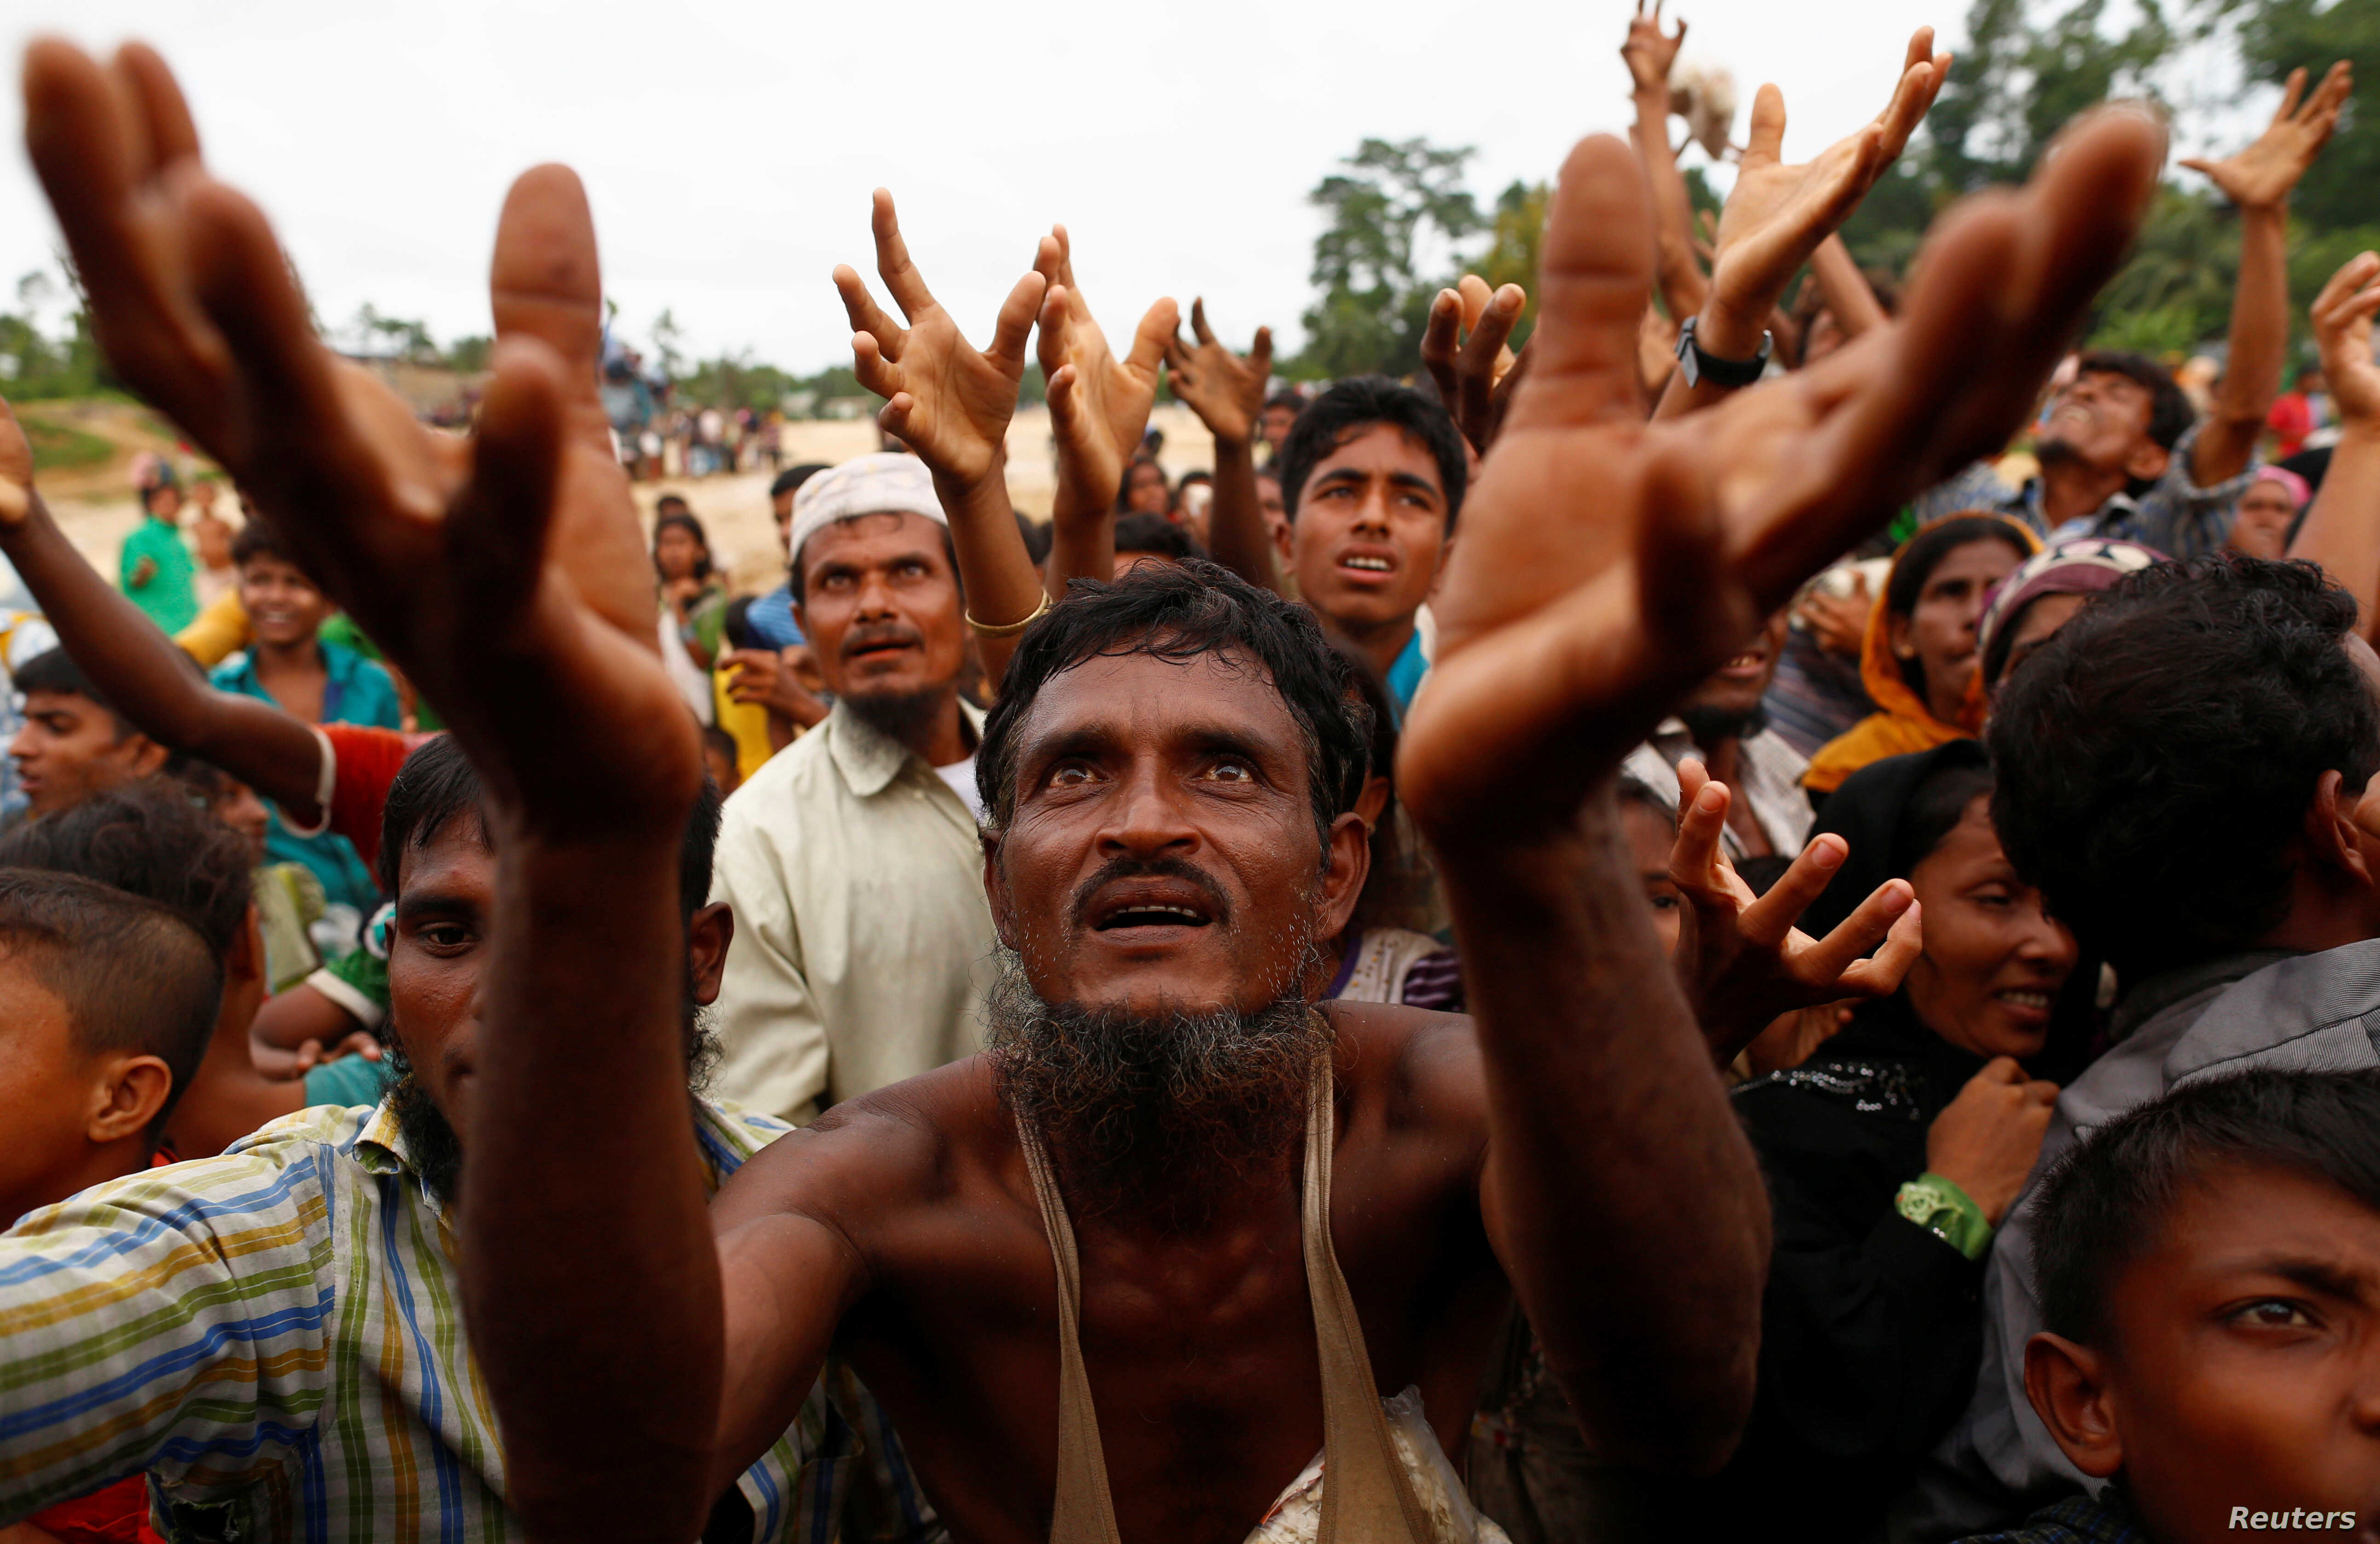 Rohingya refugees stretch their hands to receive food distributed by local organizations in Kutupalong, Bangladesh, Sept. 9, 2017.